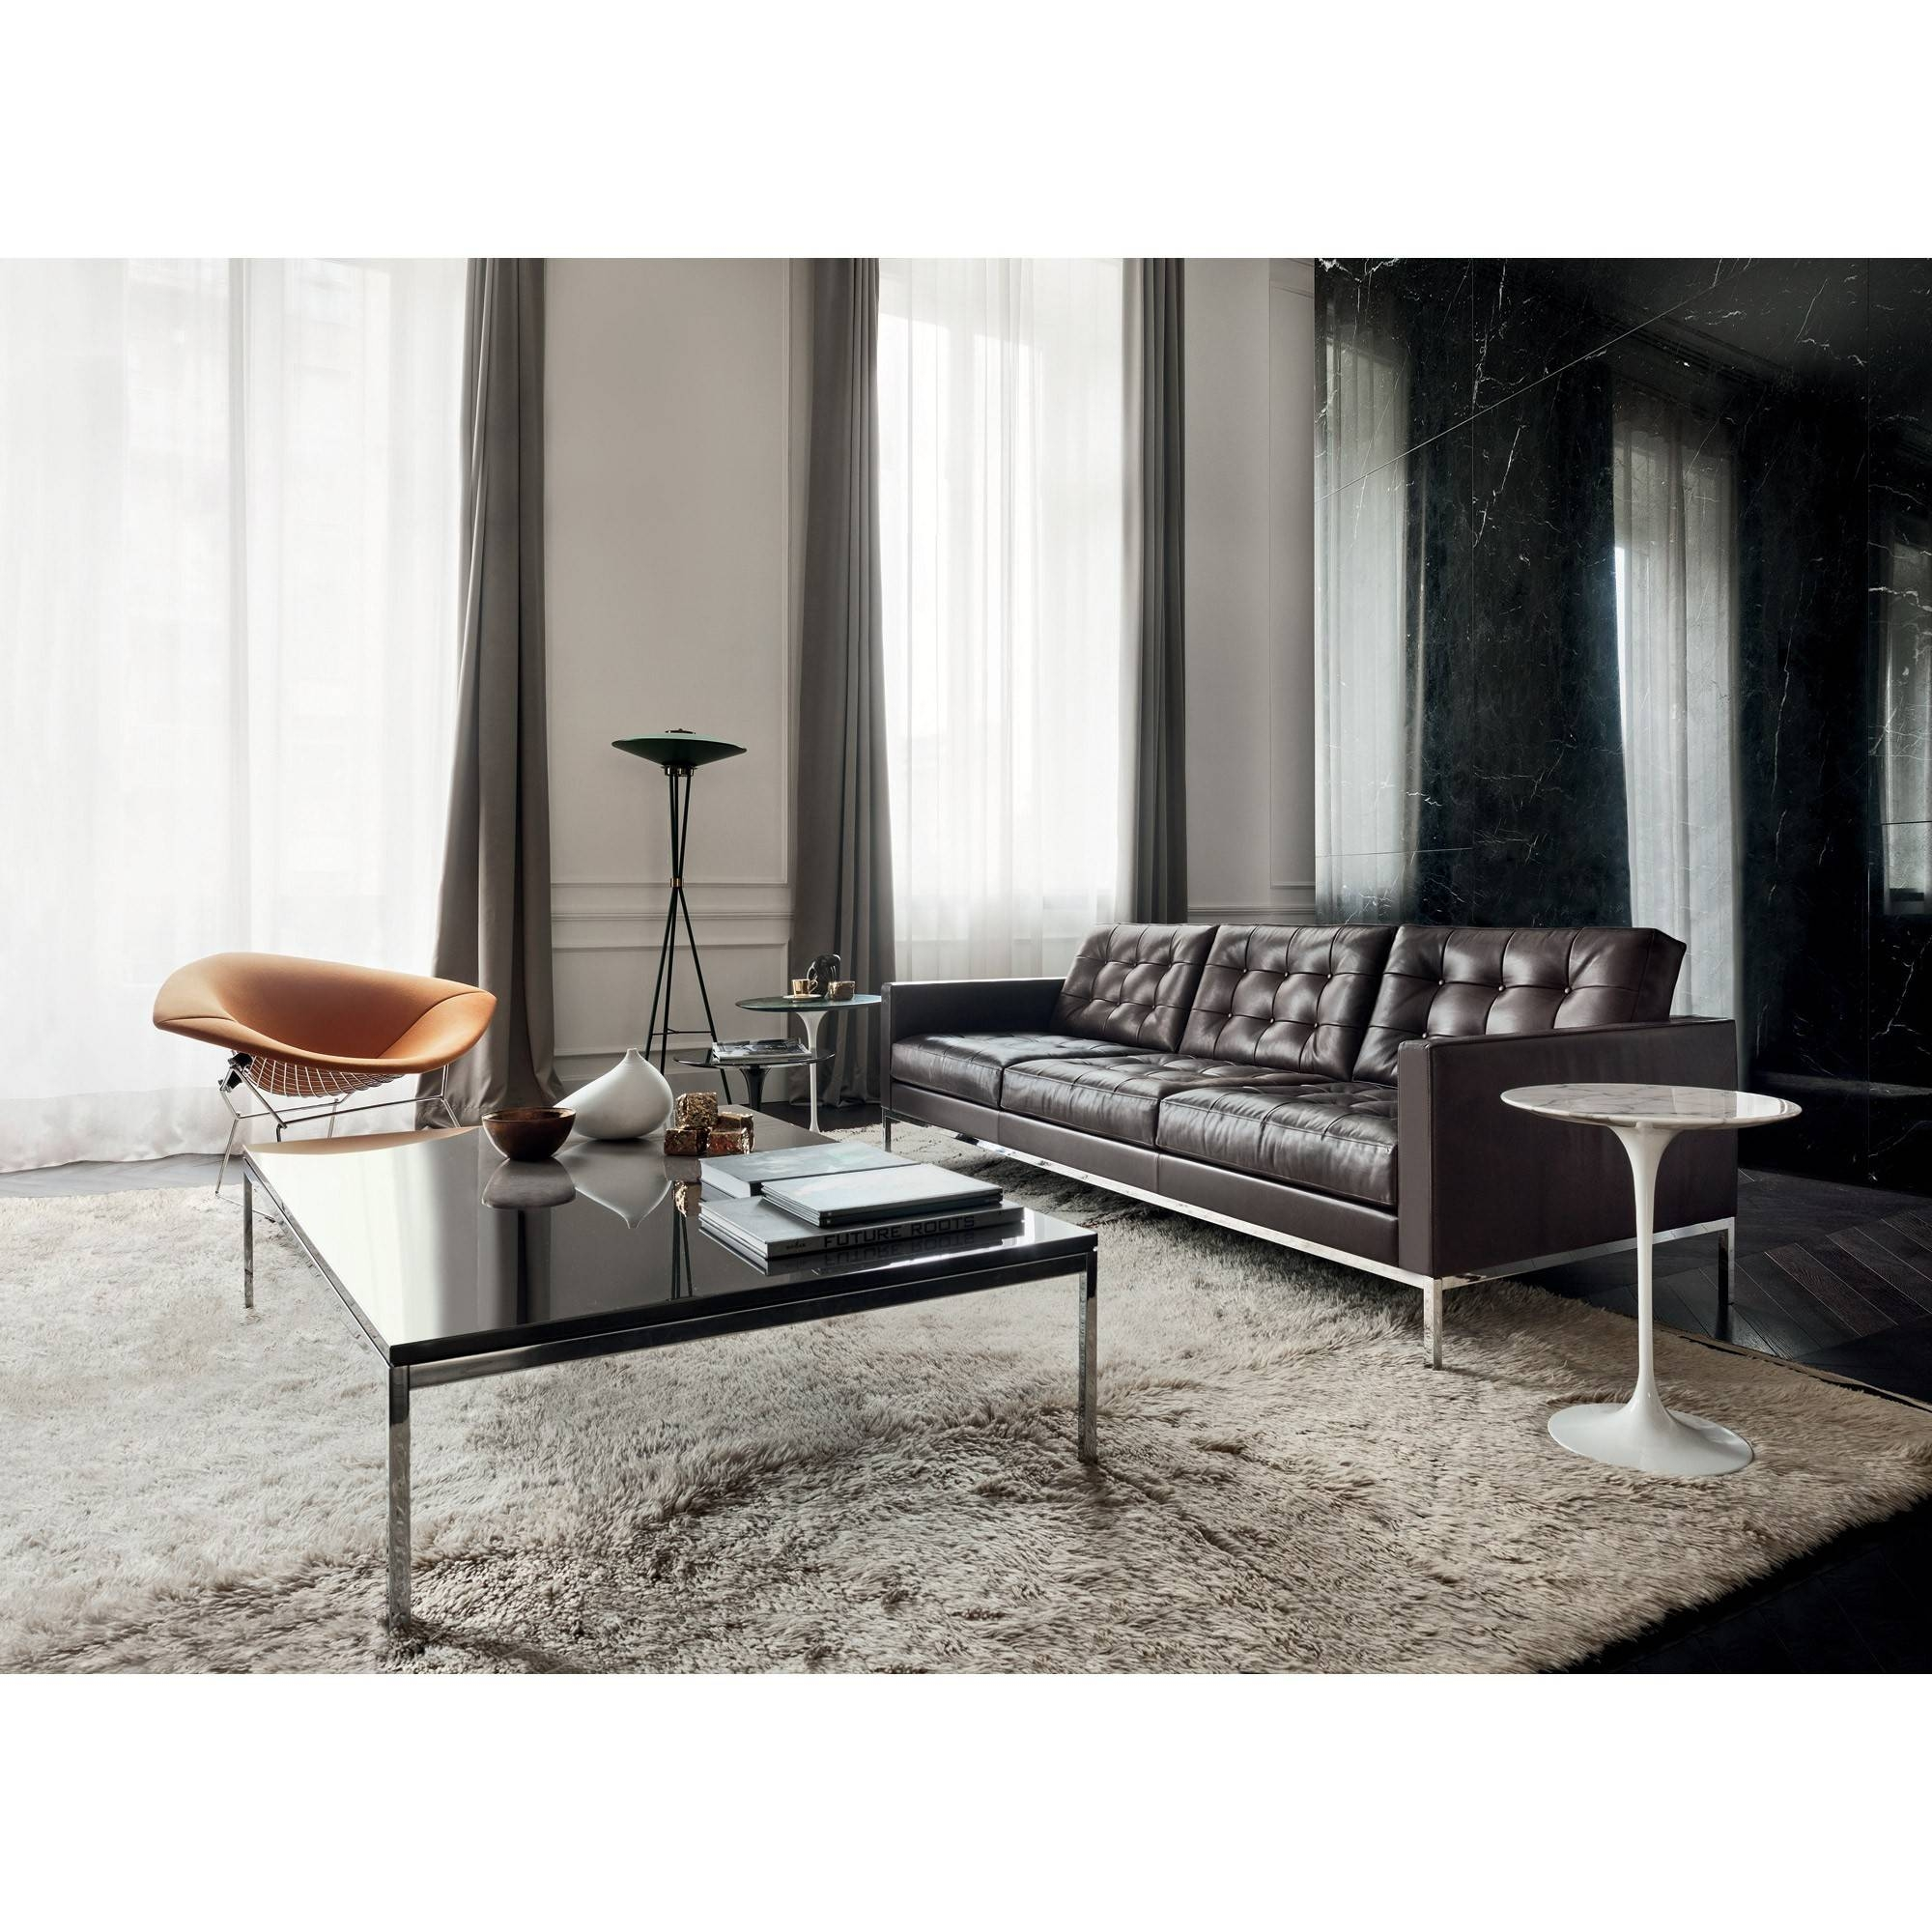 Florence Knoll 'relax' Sofa | Skandium for Florence Knoll 3 Seater Sofas (Image 4 of 30)